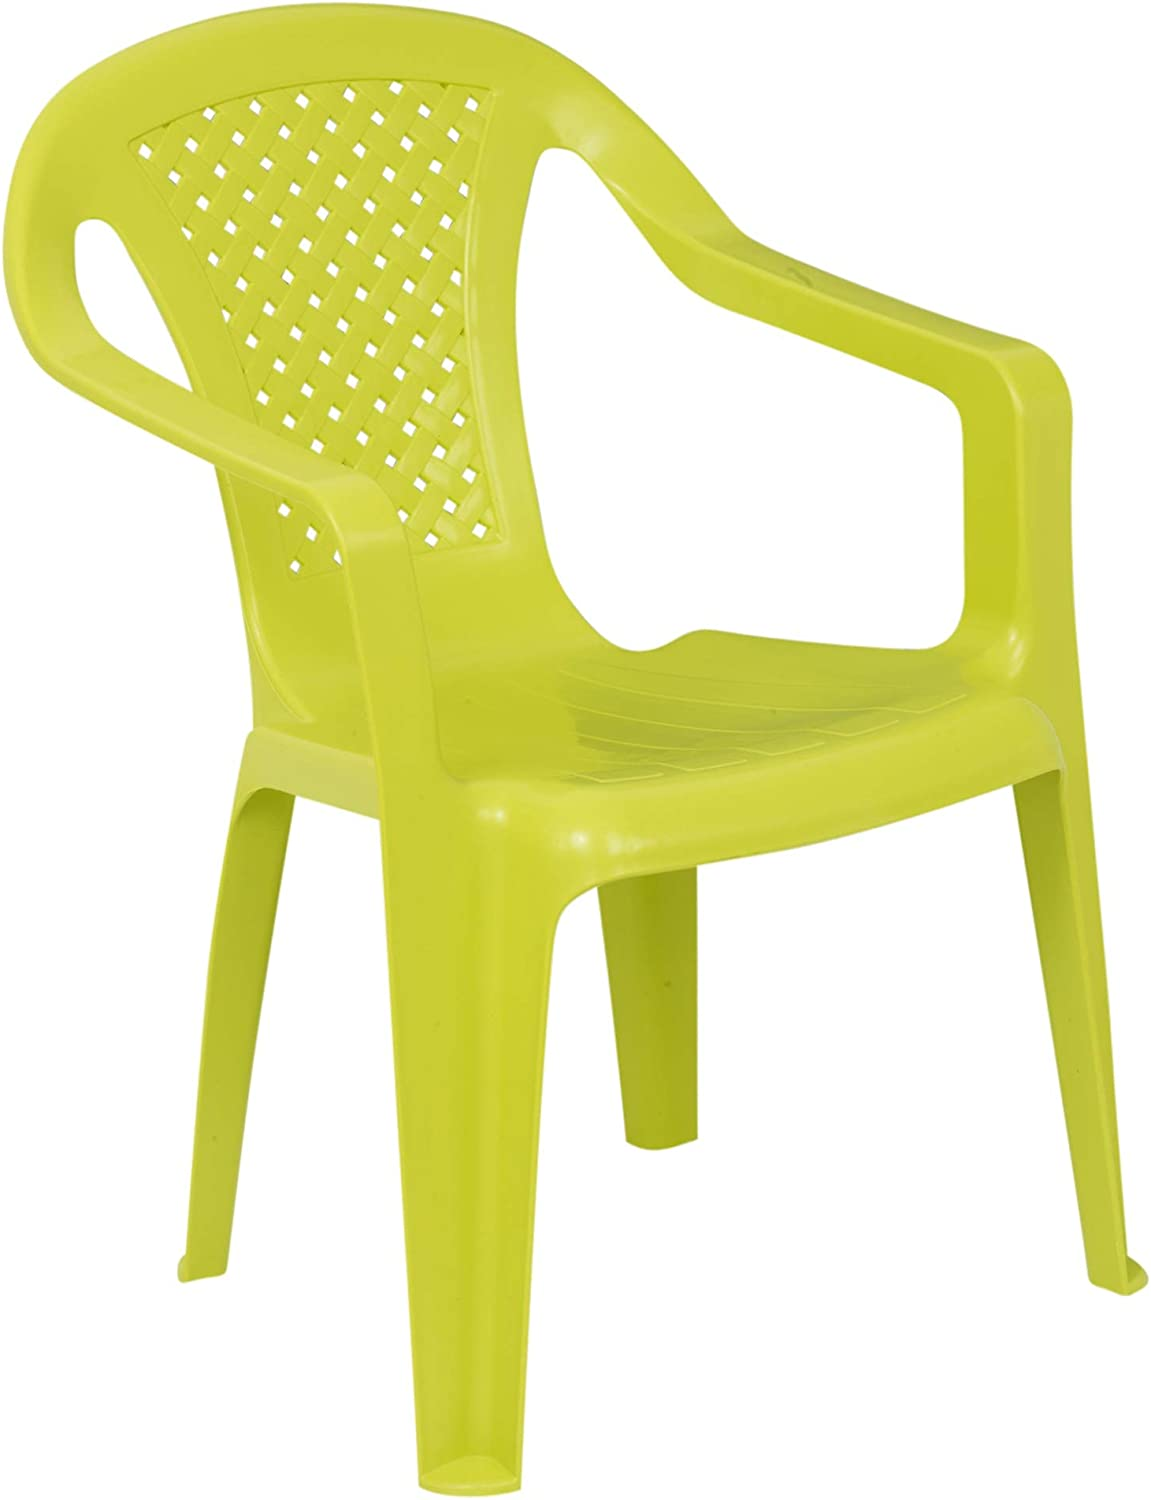 Green Quantity 1 URBNLIVING Camelia Plastic Childrens Chair